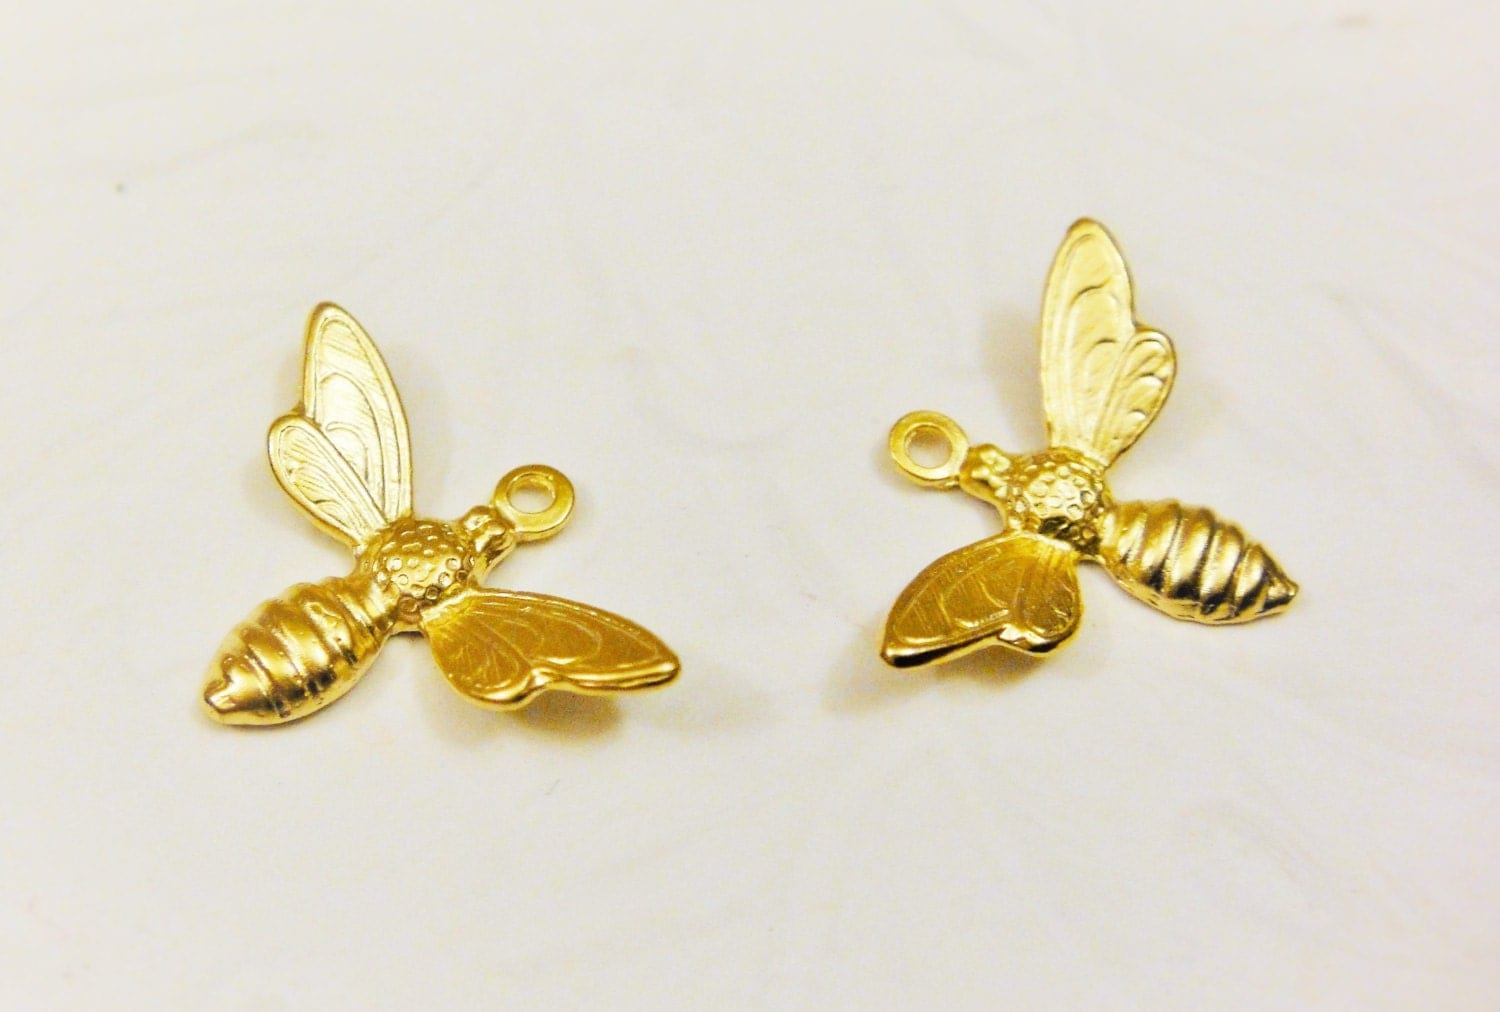 Vermeil 18k Gold Over 925 Sterling Silver Bumble Bee